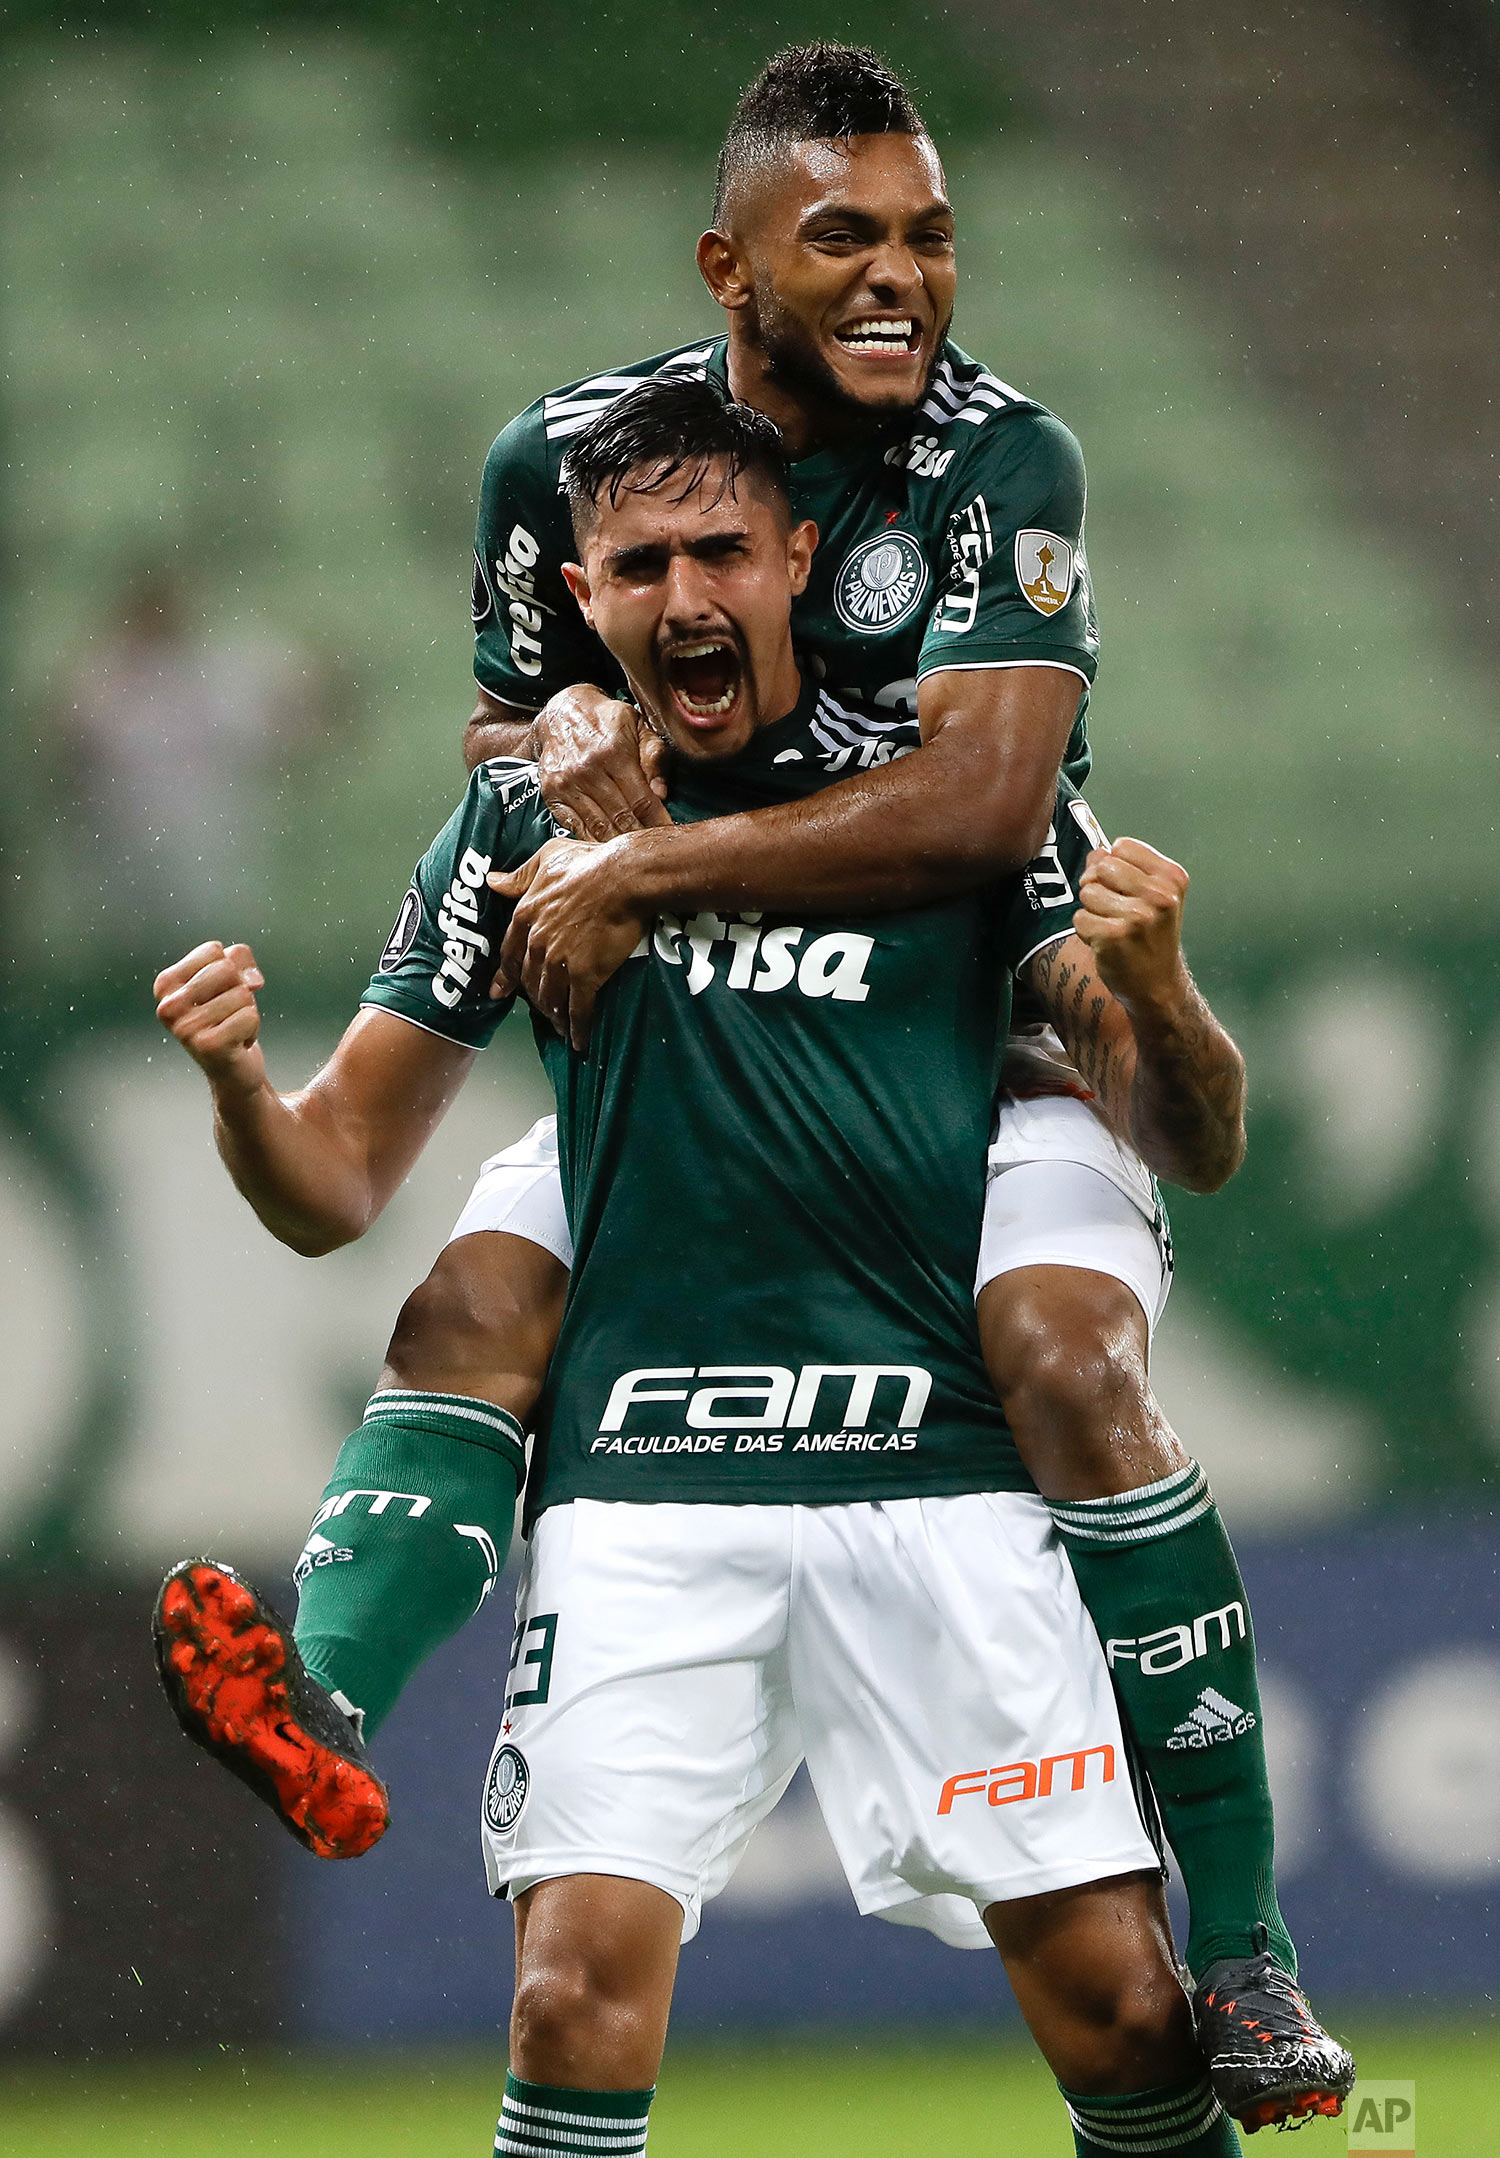 Thiago Martins of Brazil's Palmeiras, front, celebrates with teammate Miguel Borja after scoring against Peru's Alianza Lima at a Copa Libertadores soccer match in Sao Paulo, Brazil, Tuesday, April 3, 2018. (AP Photo/Andre Penner)